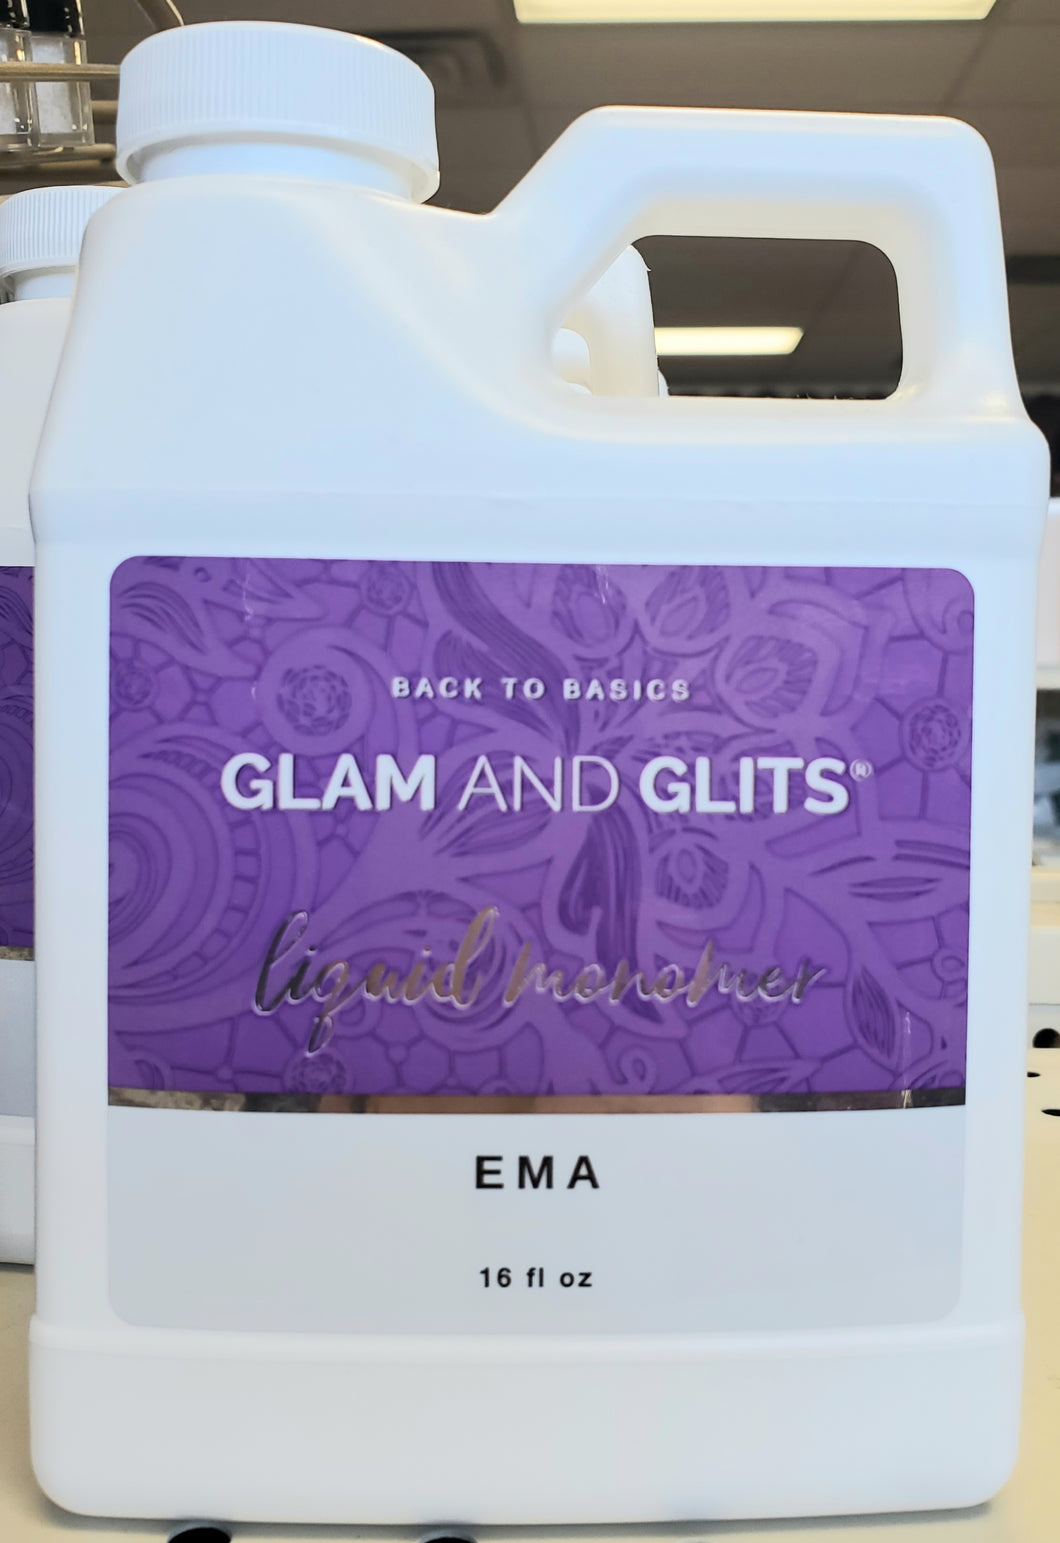 Glam and glits liquid Monomer 16oz